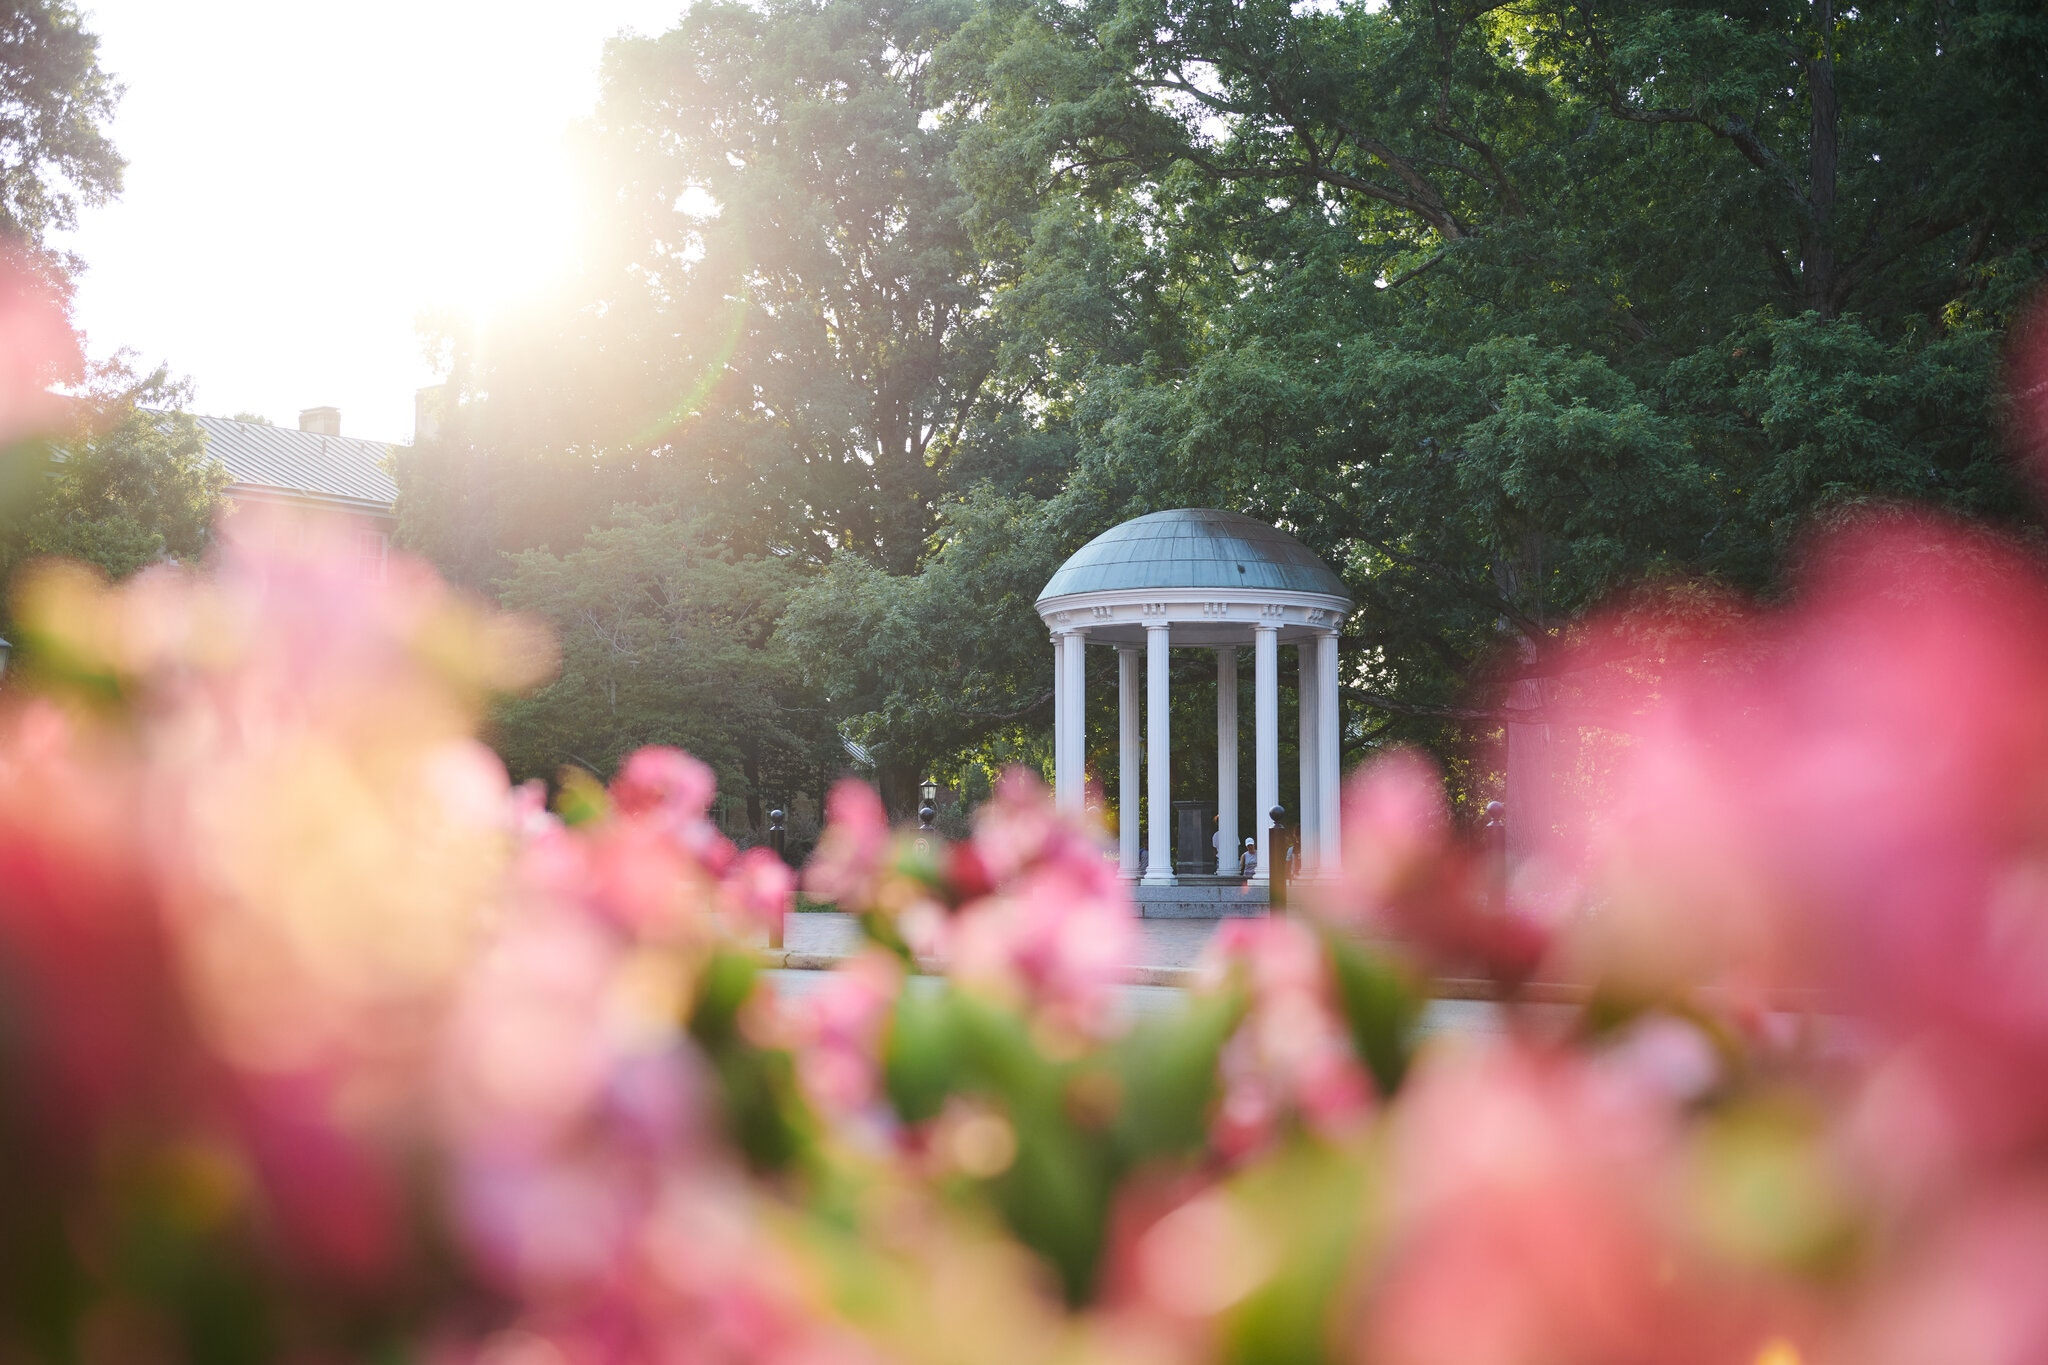 The Old Well in Chapel Hill, Lauren Vied Allen for The New York Times